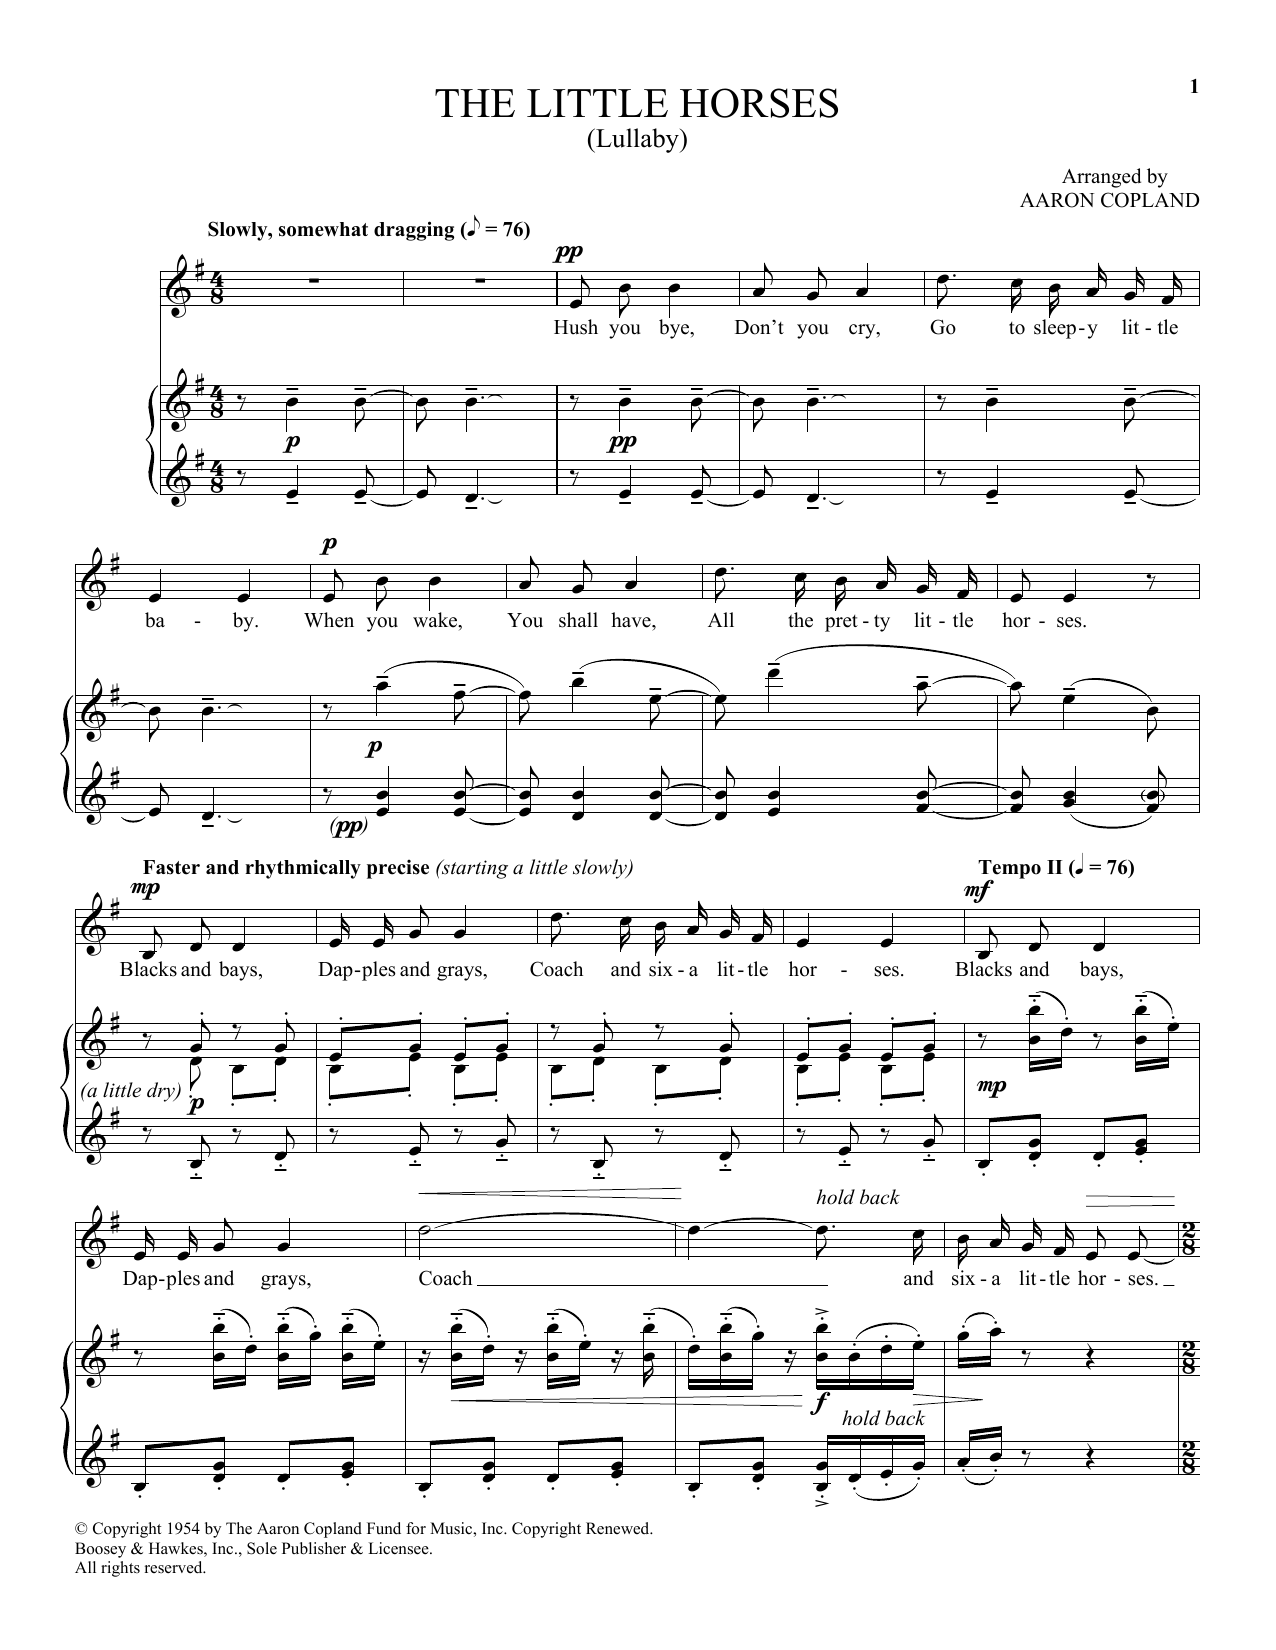 Old American Songs - Wikipedia